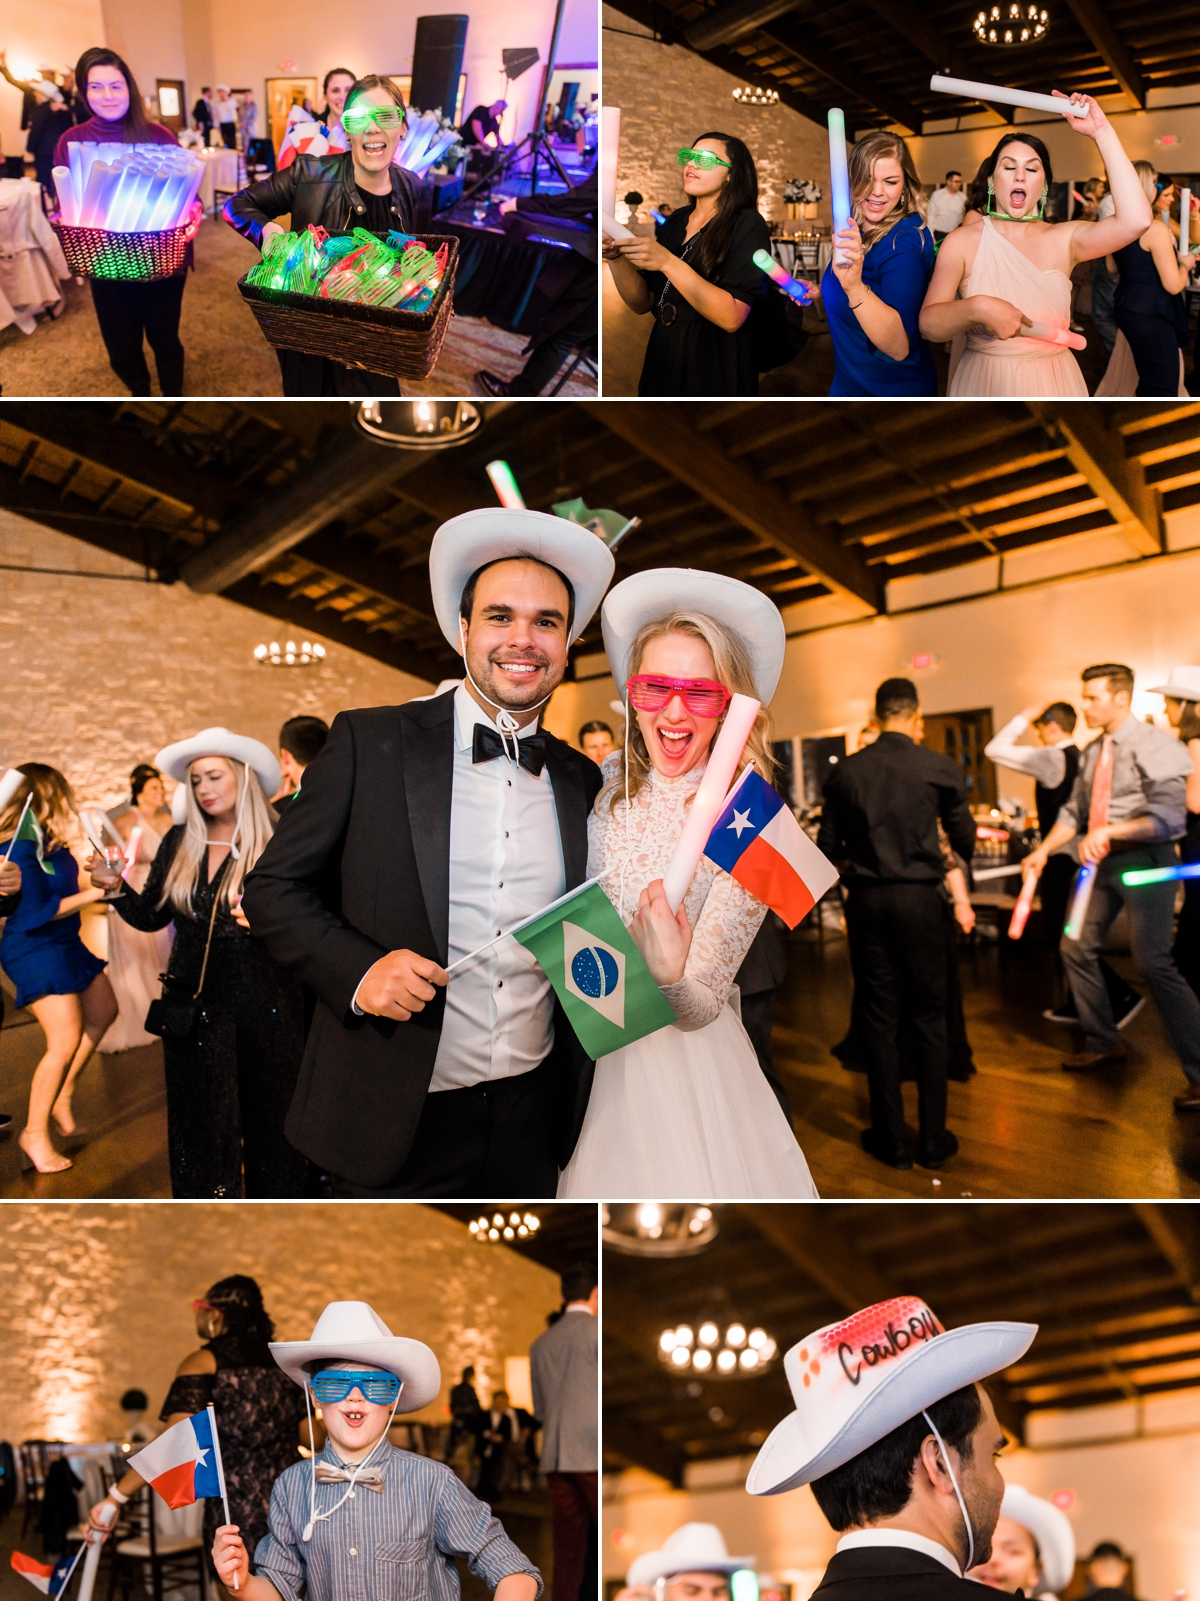 Incorporate your culture with mini flags at your wedding! This Texas meets Brazil wedding had miniature flags of Texas and Brazil along with light up glow sticks and glasses